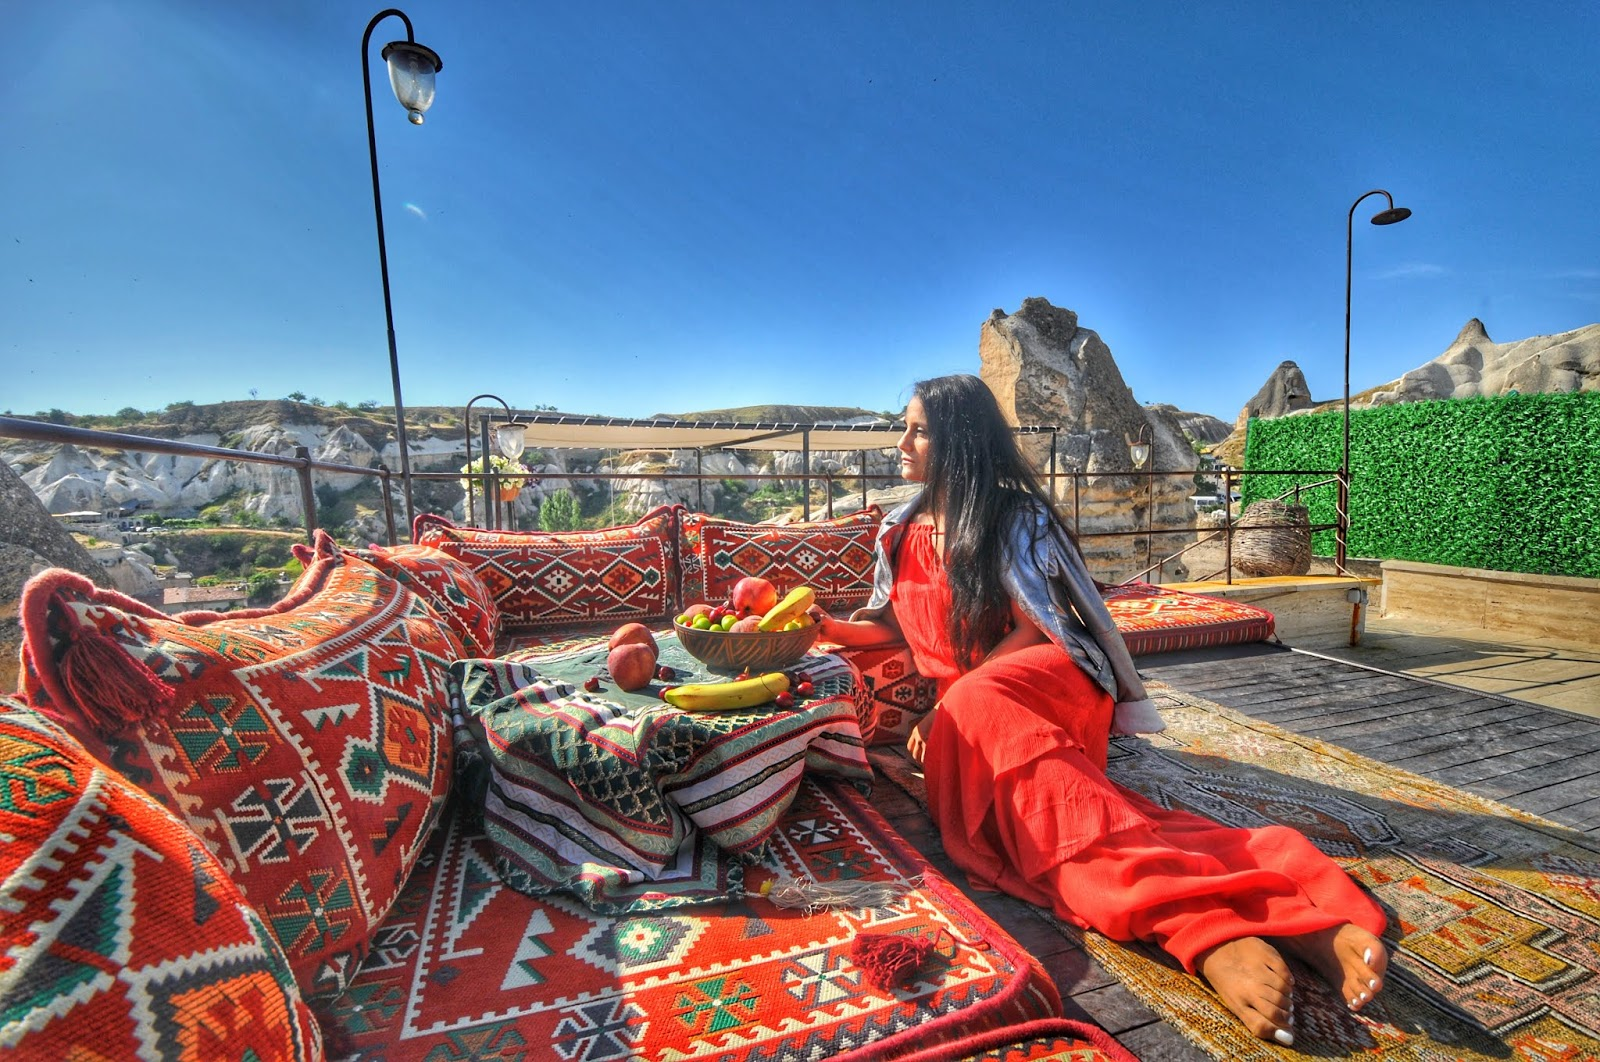 Cappadocia Cave Hotel  - Vegan Travel Guide - Things to do in Cappadocia Turkey Holidays